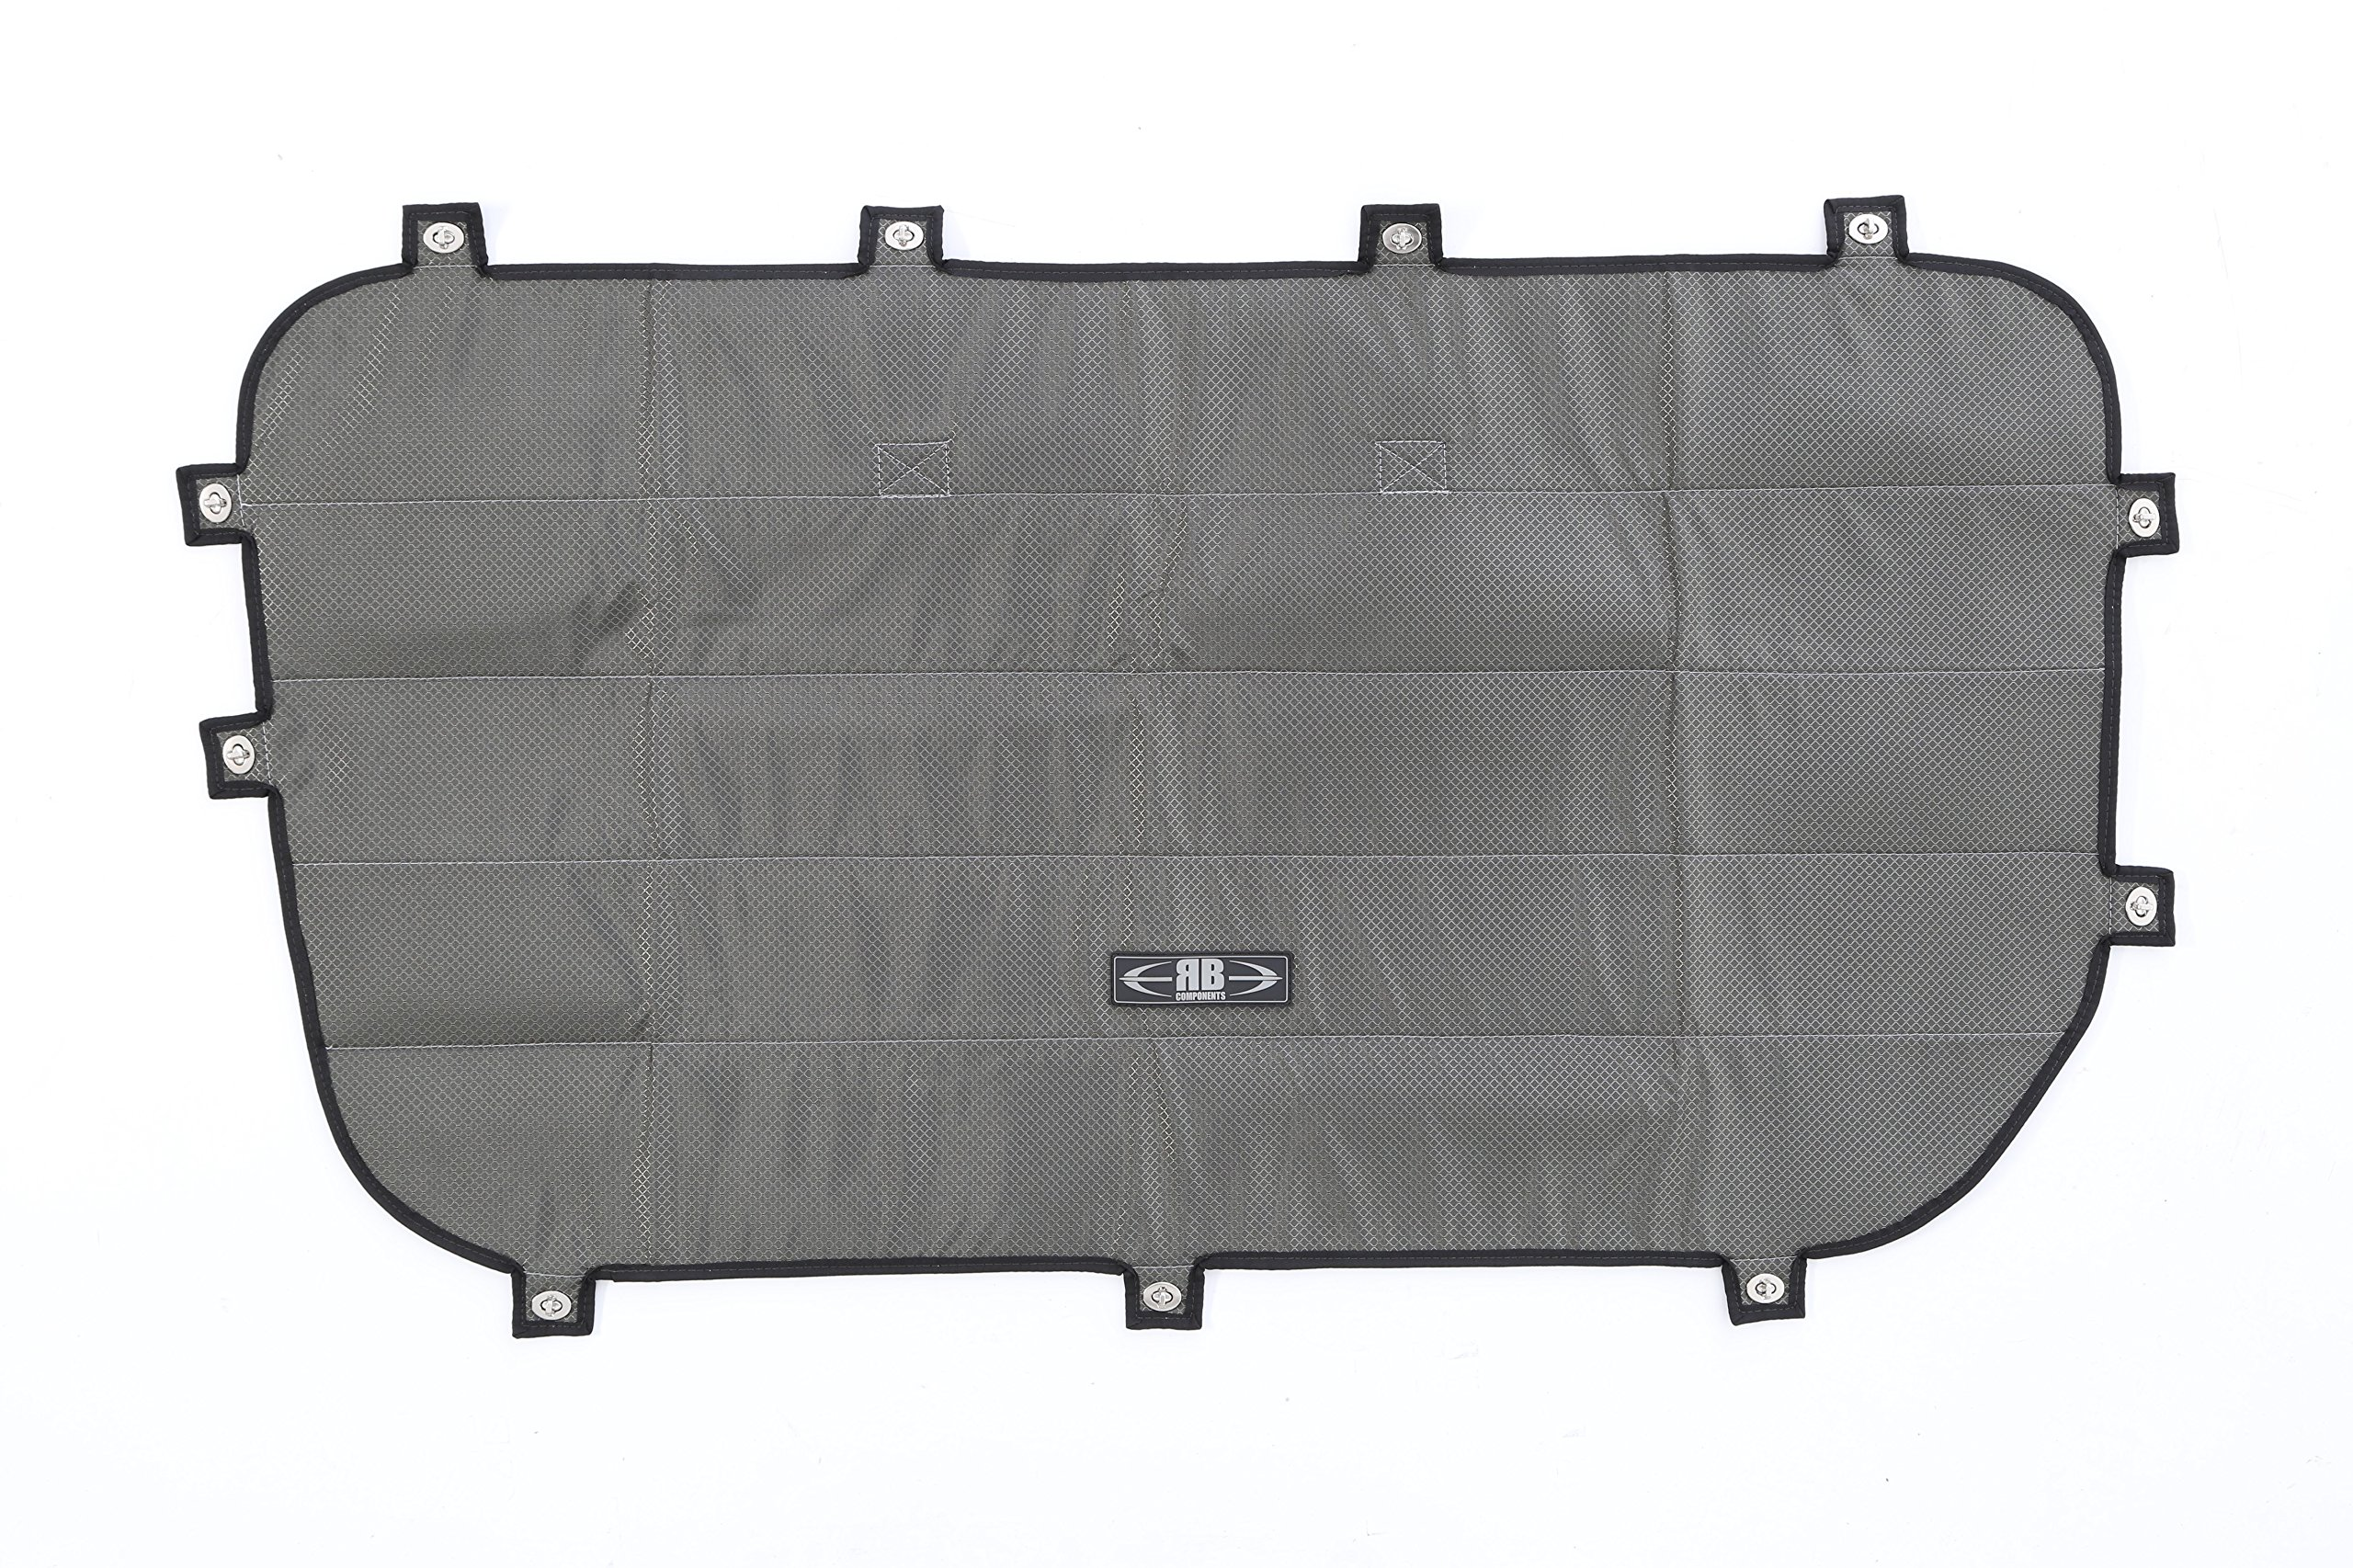 07+ Sprinter Van Driver's Side Galley Window Sun Shade/Privacy Cover, Inset by RB Components (Image #2)